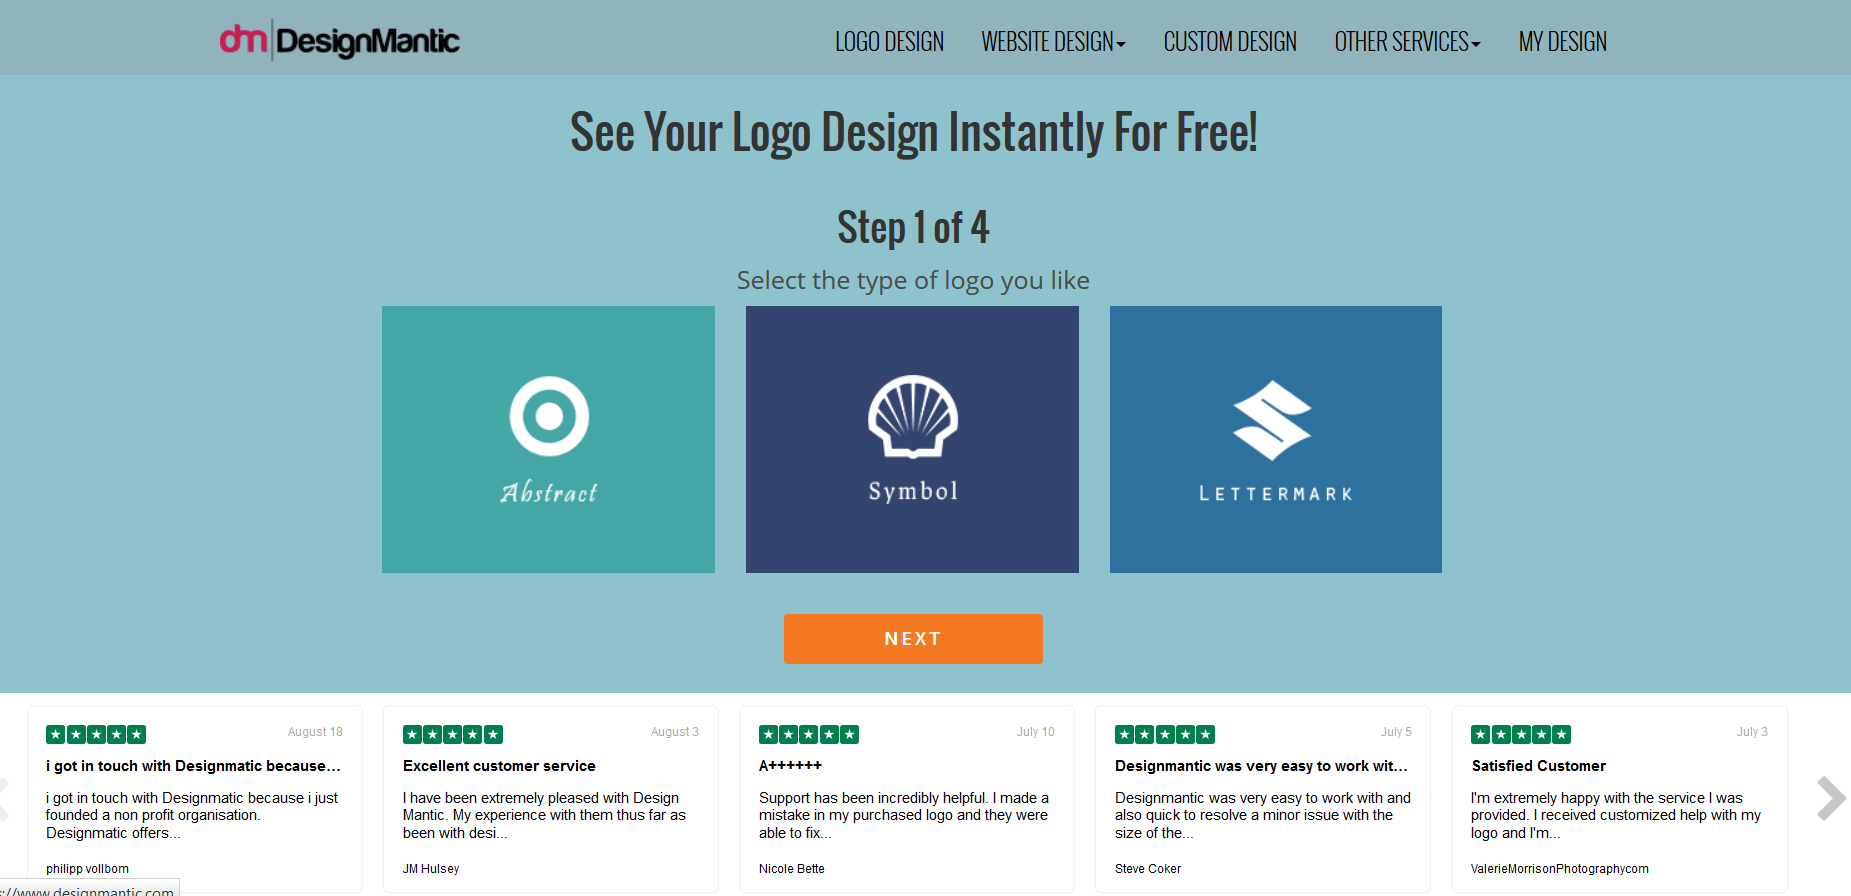 Designmantic a logo creation tool for your business.